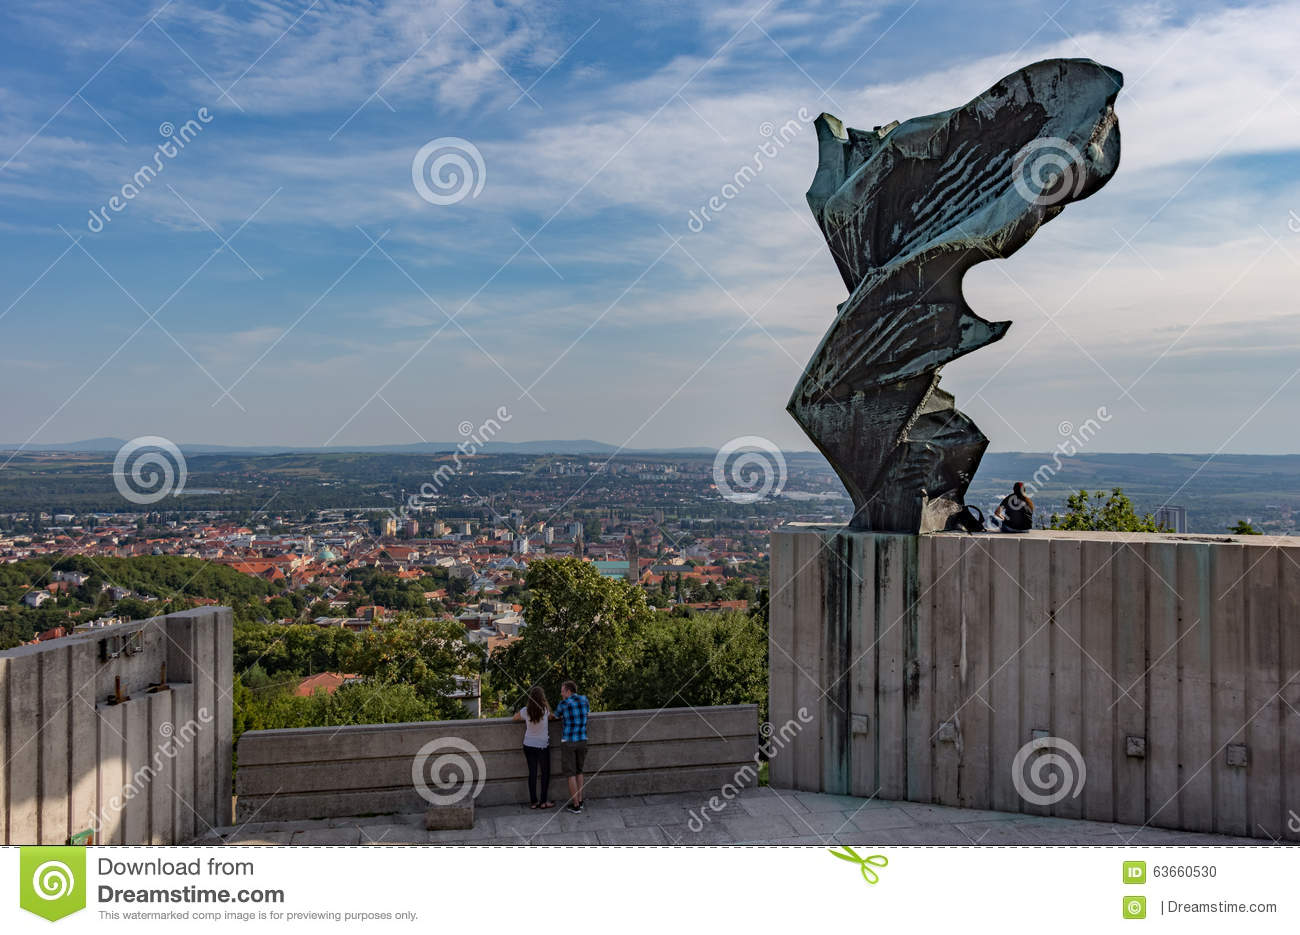 Ajustable Playa antecedentes  End Of Summer - Nike Statue, Pécs, Hungary Editorial Image - Image of  pacopy, mountains: 63660530